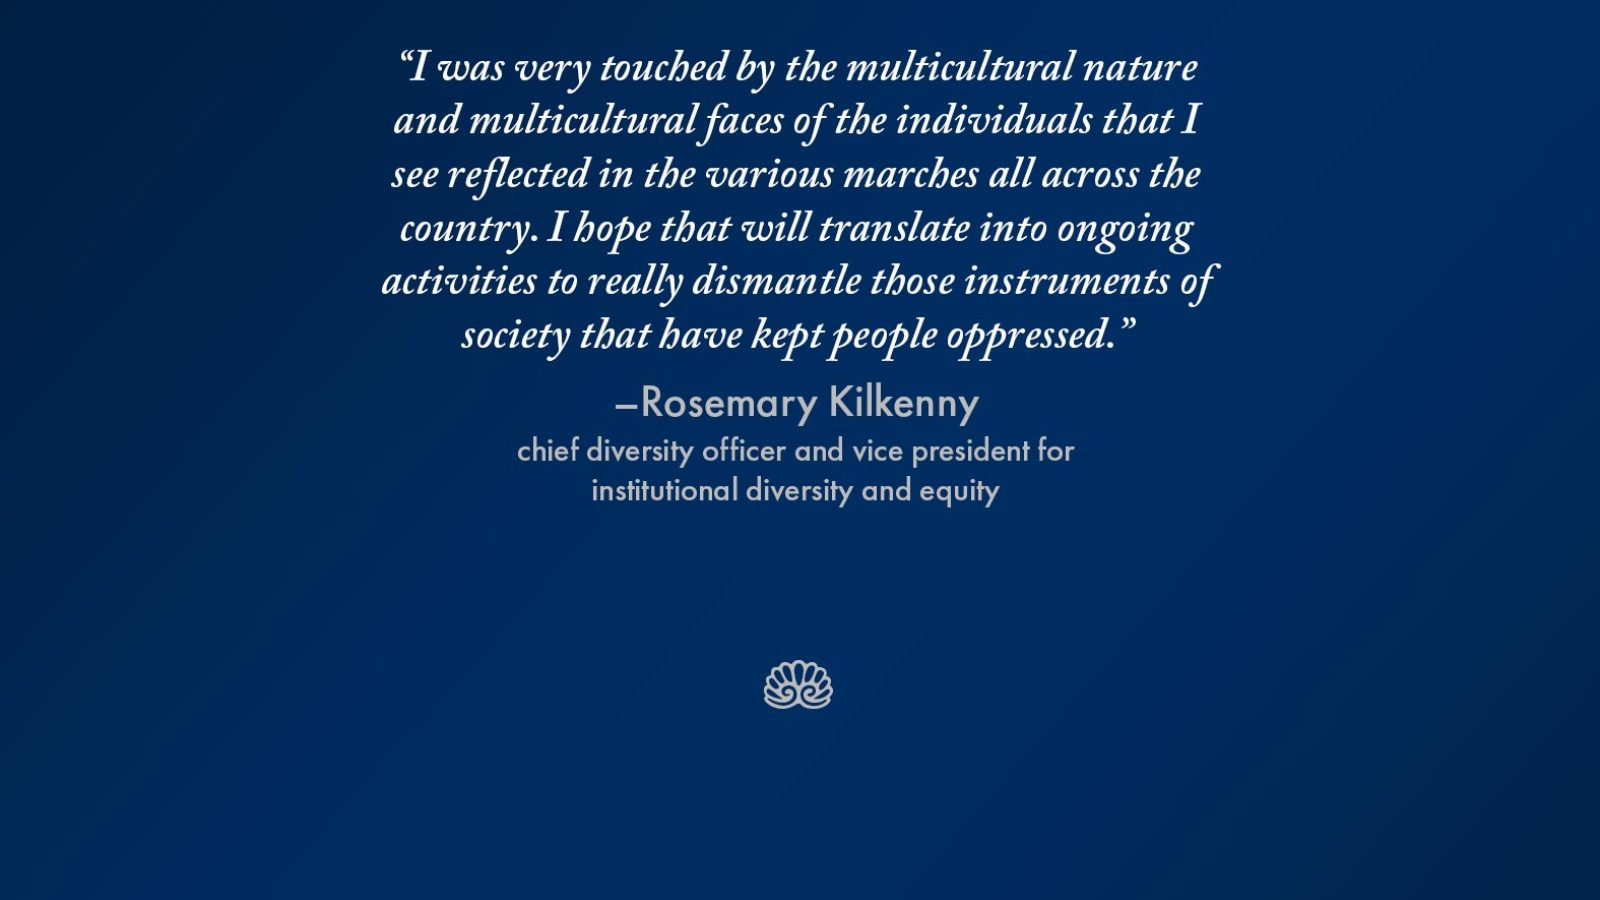 "Graphic with the words ""I was very touched by the multicultural nature and multicultural faces of the individuals that I see reflected in the various marches all across the country. I hope that will translate into ongoing activities to really dismantle those instruments of society that have kept people oppressed."" - Rosemary Kilkenny, chief diversity officer and vice president for institutional diversity and equity"